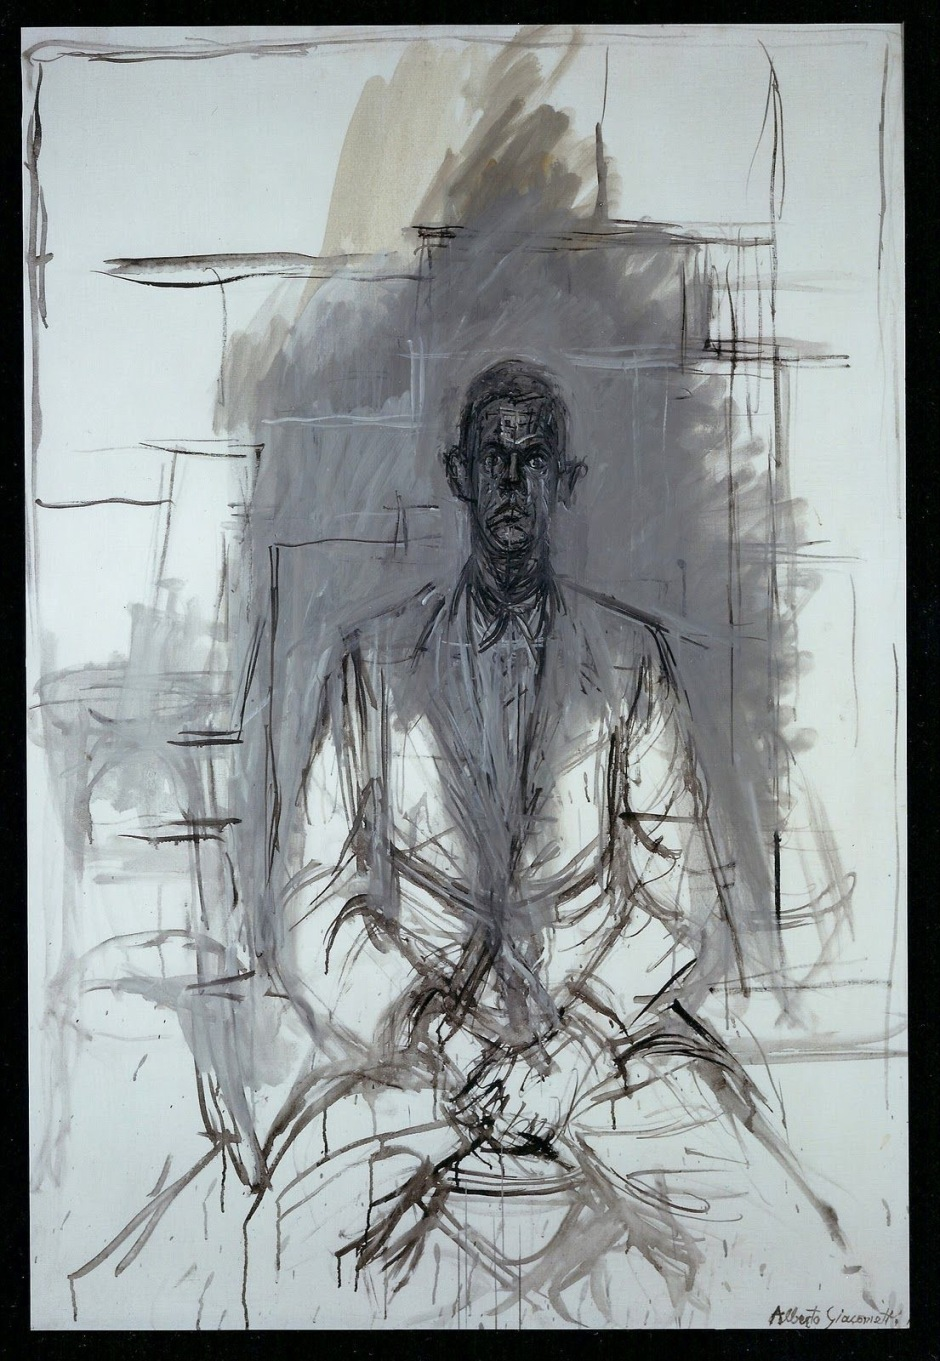 Portrait of James Lord, 1964